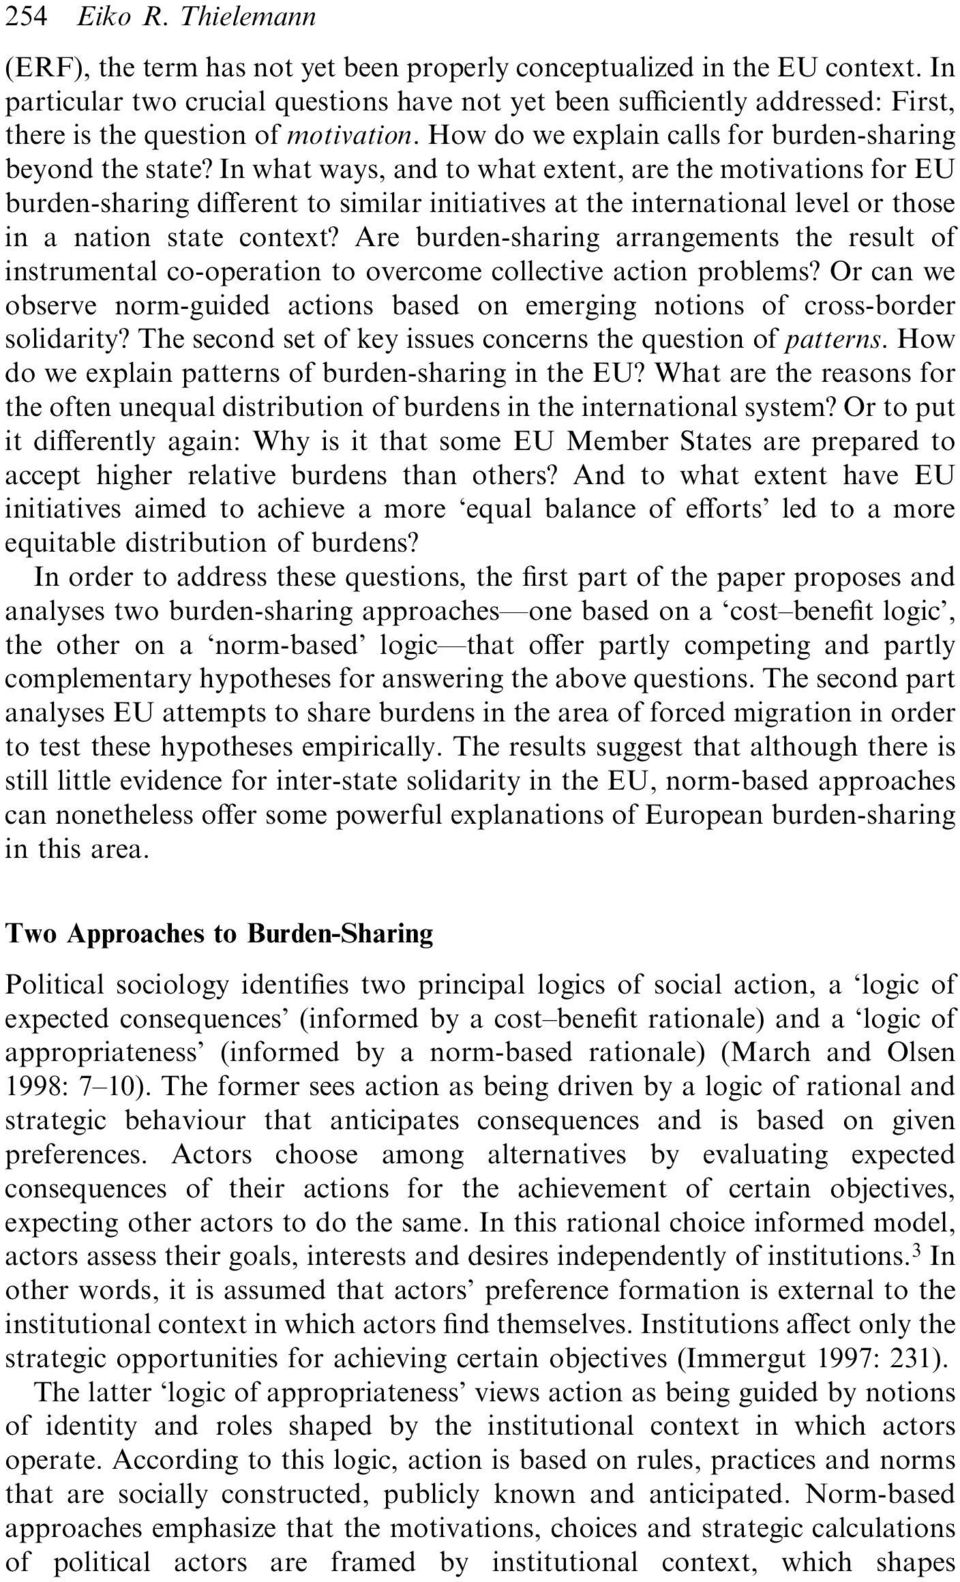 In what ways, and to what extent, are the motivations for EU burden-sharing different to similar initiatives at the international level or those in a nation state context?